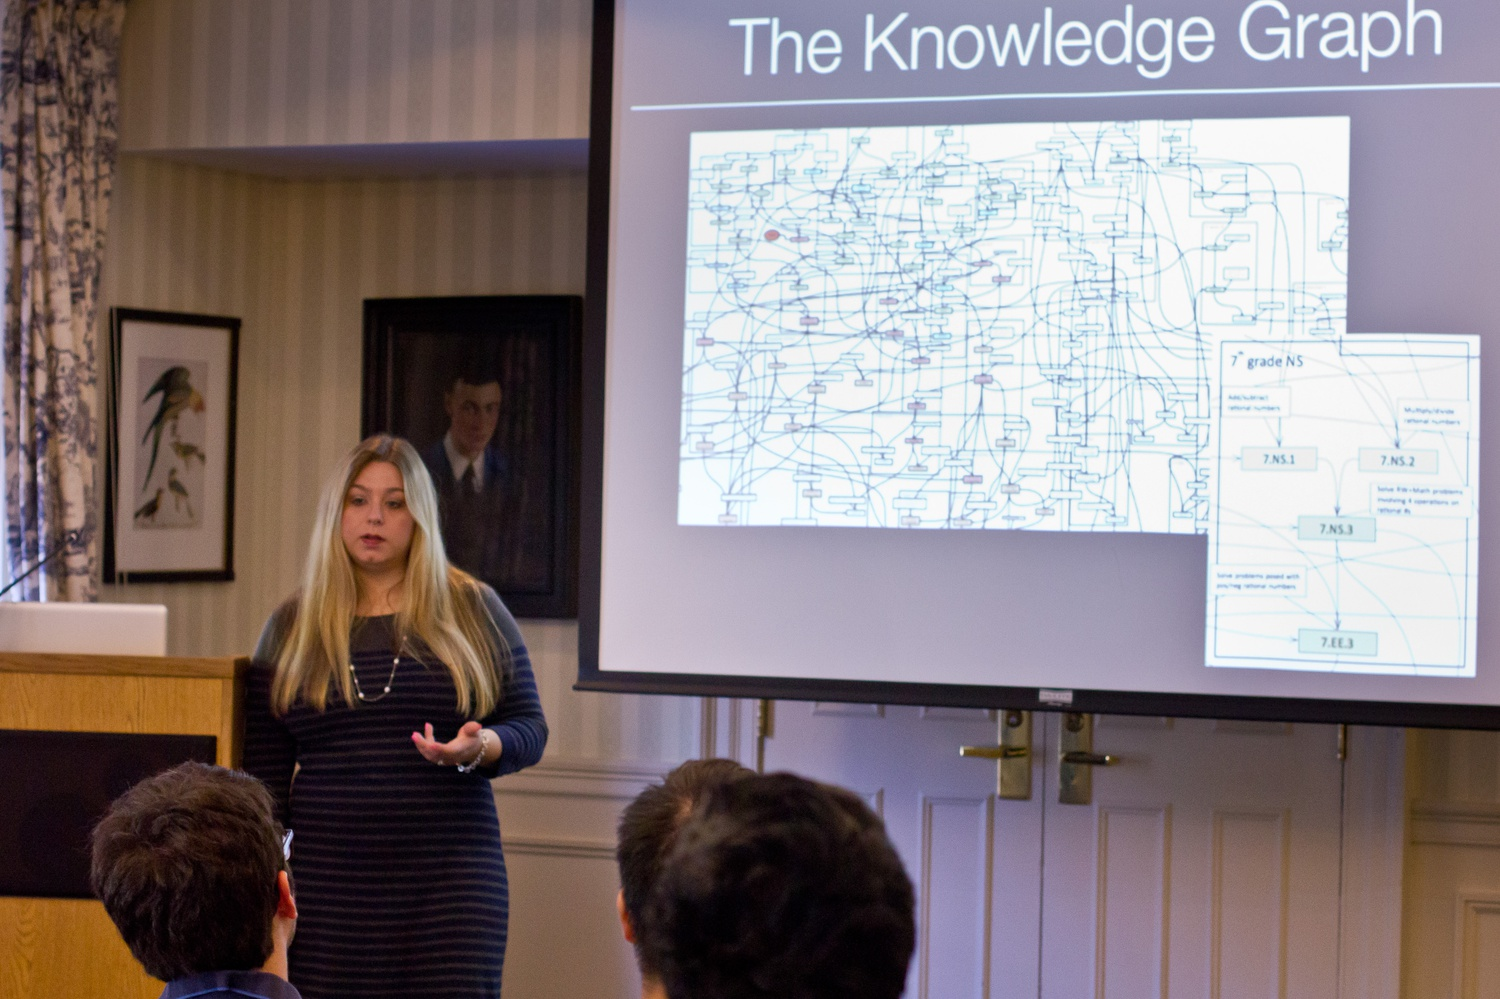 Stephanie Killian '05 a Software Engineering Manager of Knewton talks about their technology and challenges at an event in the Harvard Faculty Club. Knewton is a New York City-based adaptive learning company that uses data to personalize the delivery of online learning content.